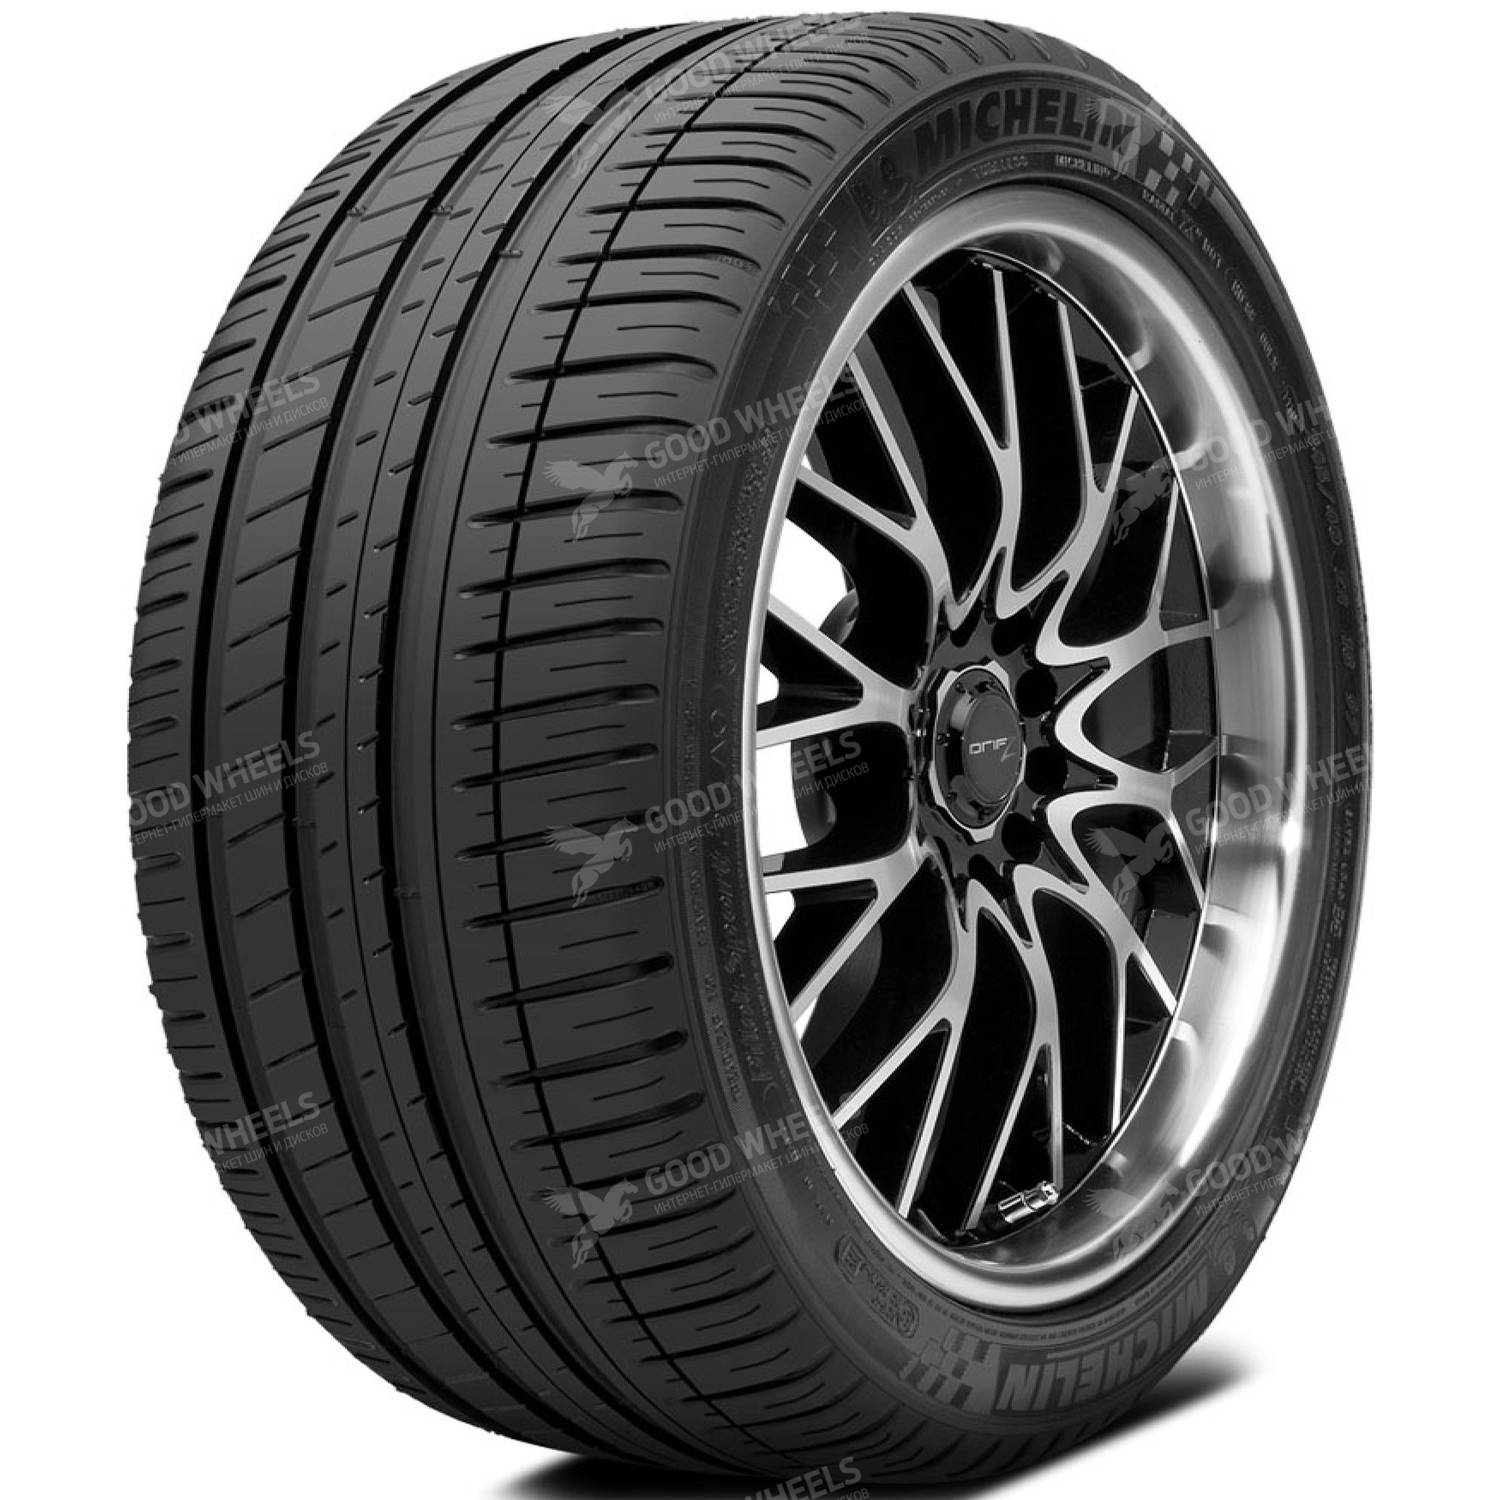 Michelin Pilot Sport 3 (PS3) 205/55 R16 91W